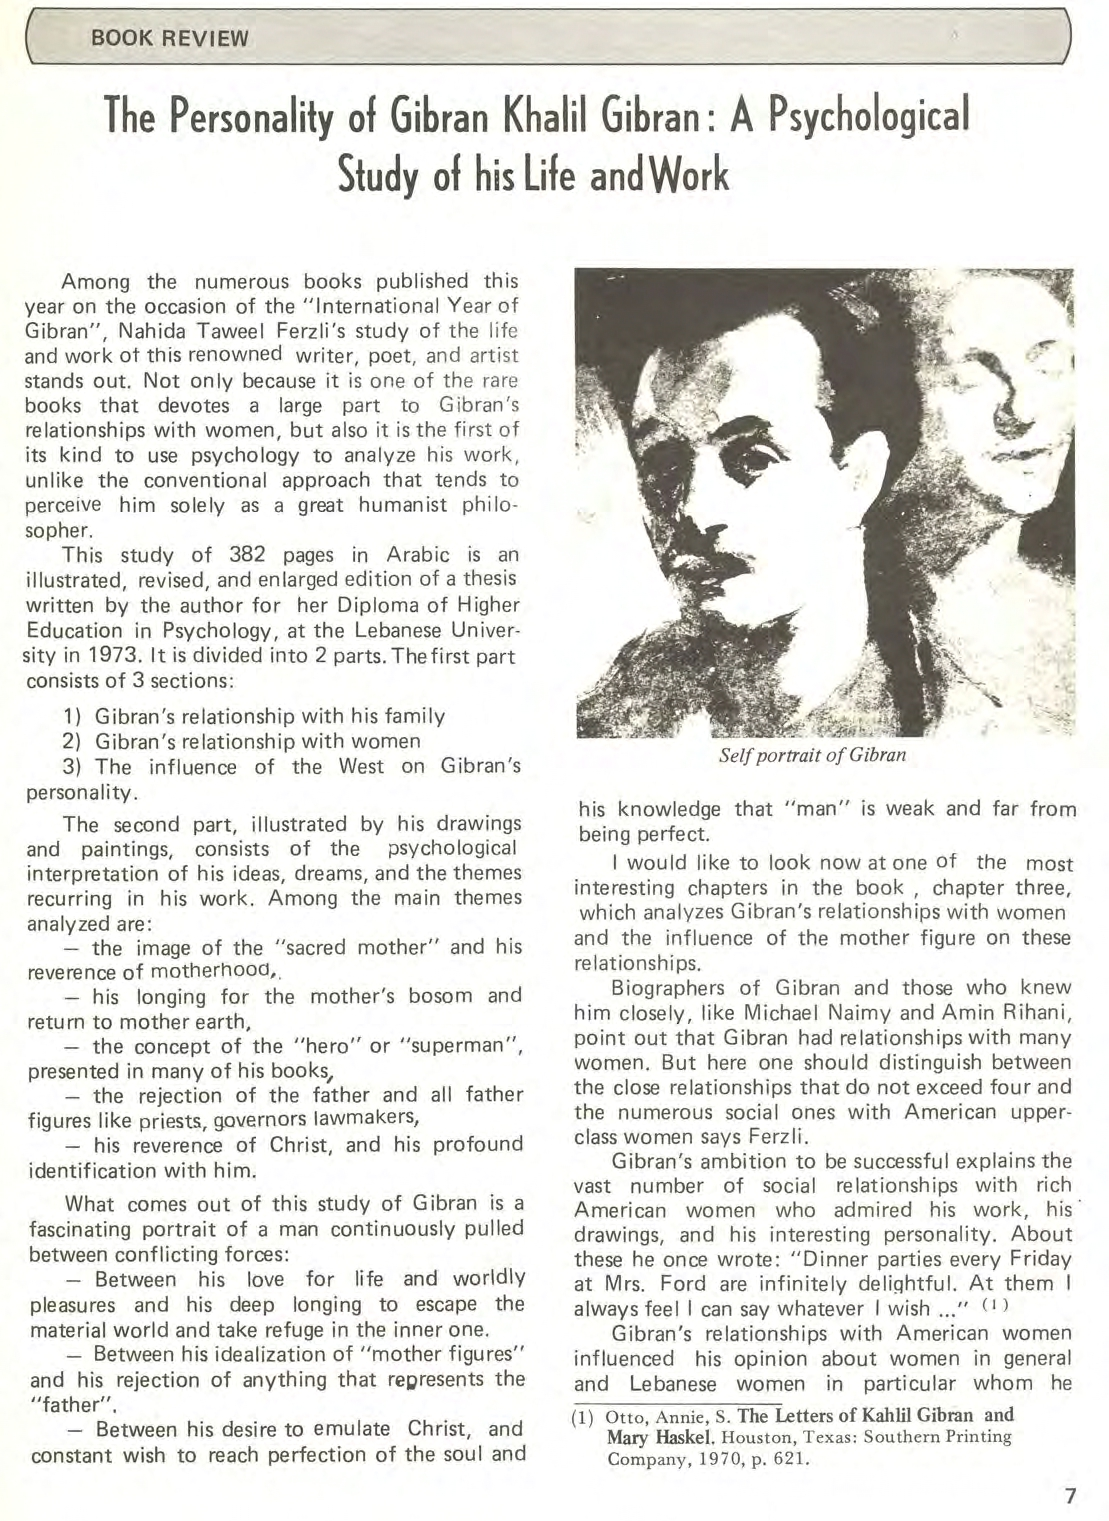 Wafa' Stephan, The Personality of Gibran Khalil Gibran: A Psychological Study of his Life and Work [book review], Al-Raida, November 1, 1983